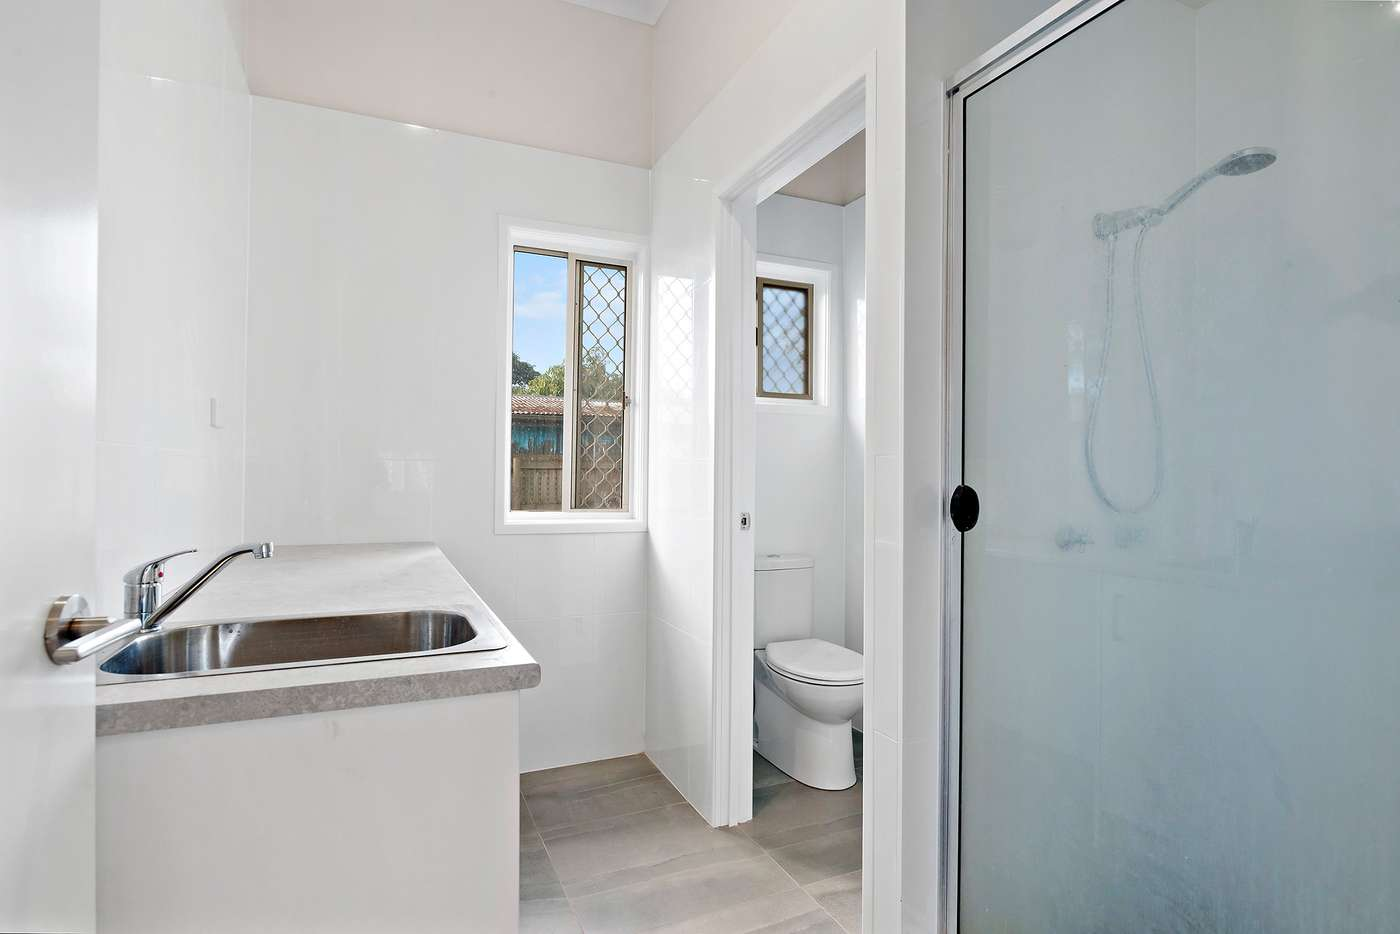 Sixth view of Homely house listing, 122 Bells Pocket Road, Strathpine QLD 4500